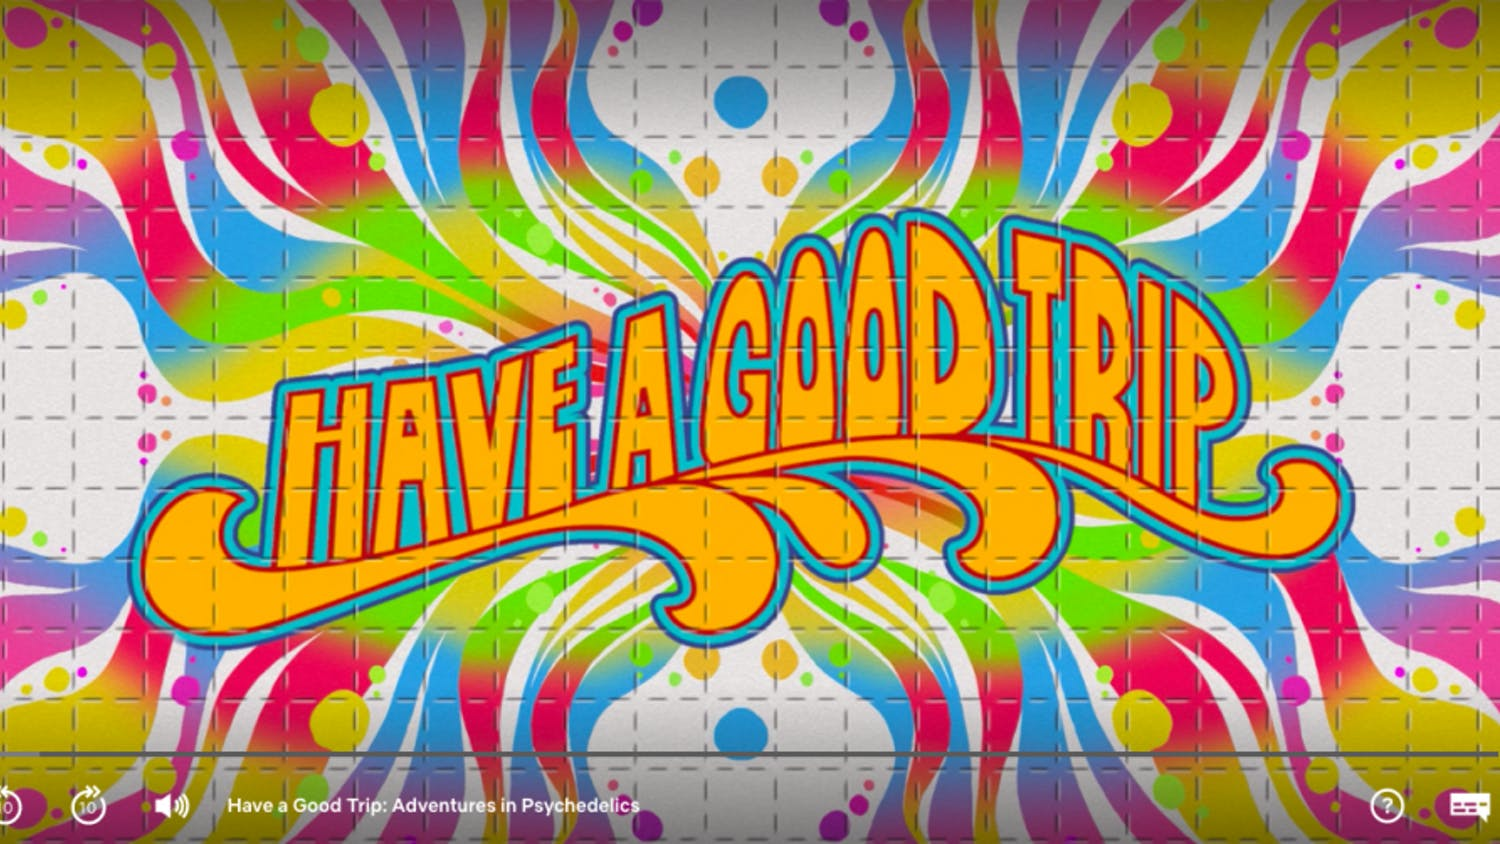 """Have a Good Trip"" aims to debunk the idea that psychedelics are a torturous one-way journey towards psychosis by interviewing beloved celebrities and animating their spiritual, orgasmic and rejuvenating experiences in the psychedelic realm."